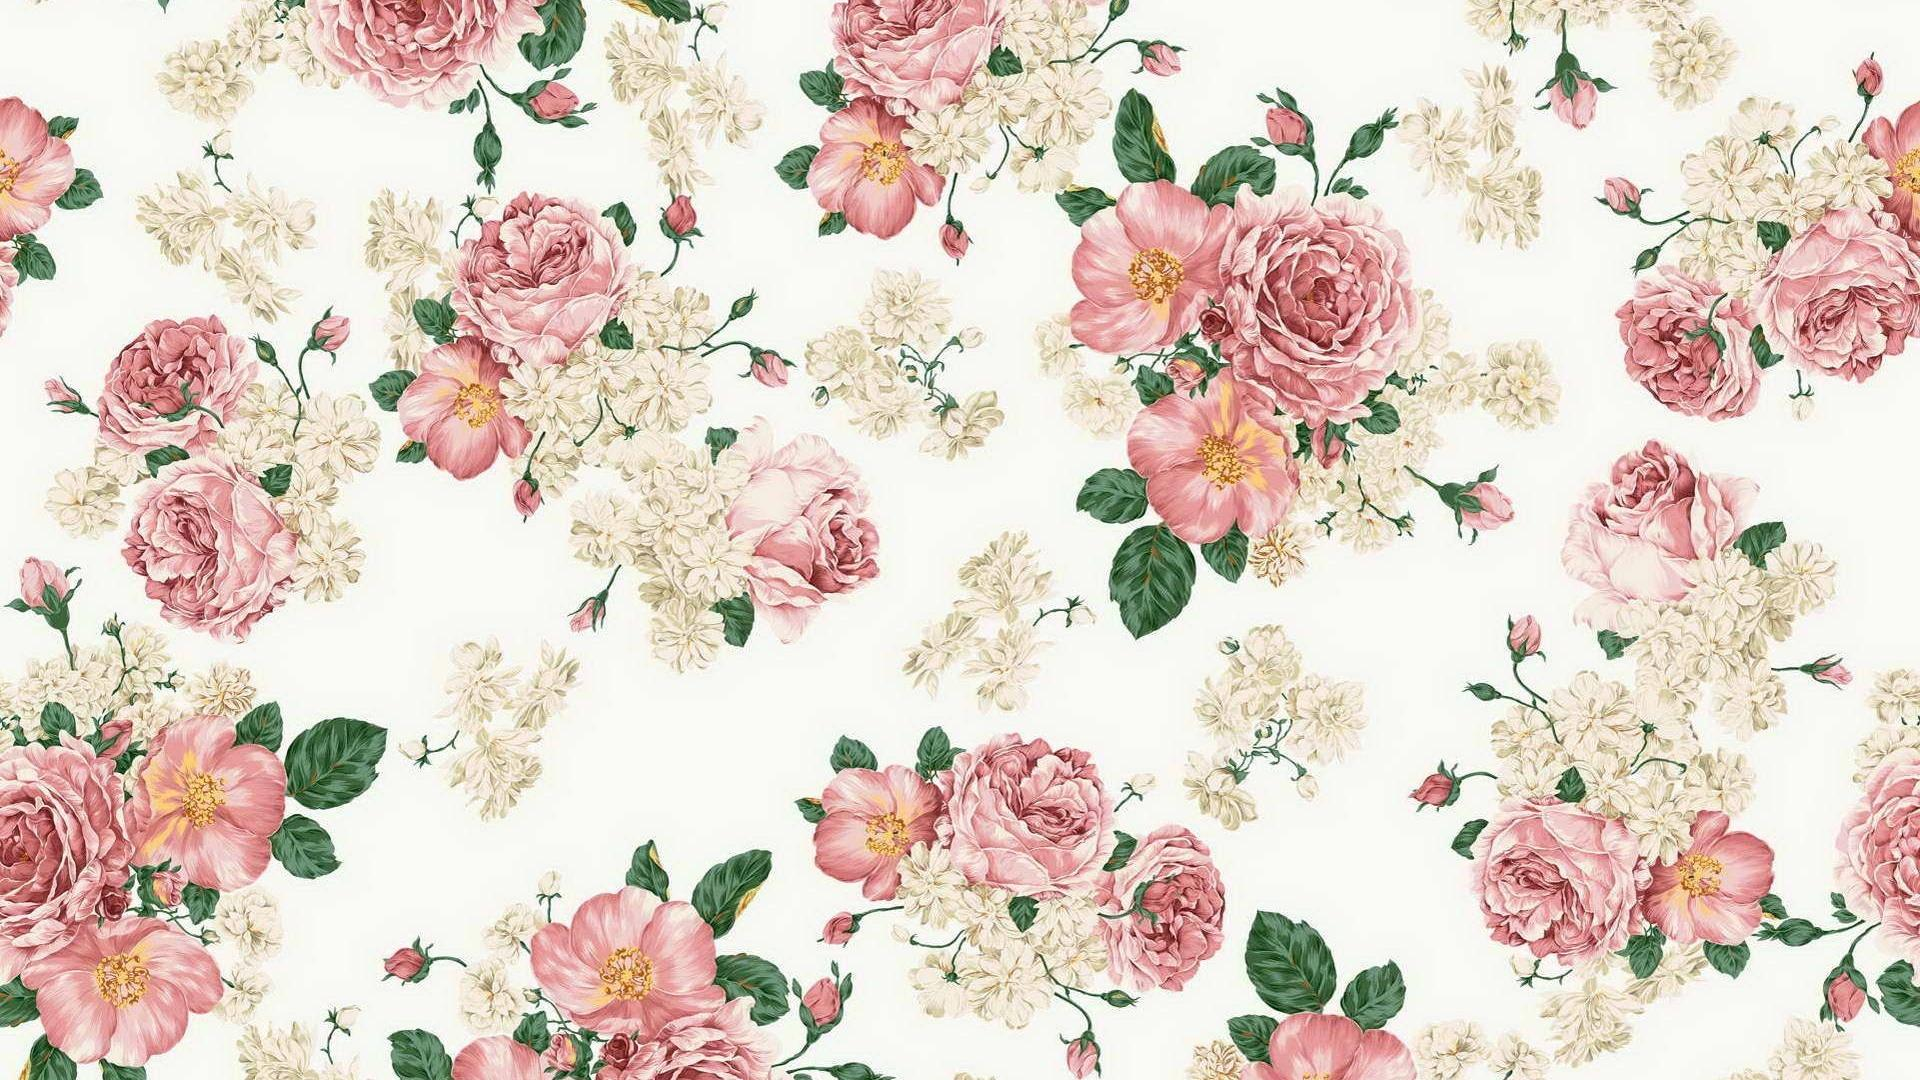 Floral texture flowers patterns roses wallpaper | (94506)